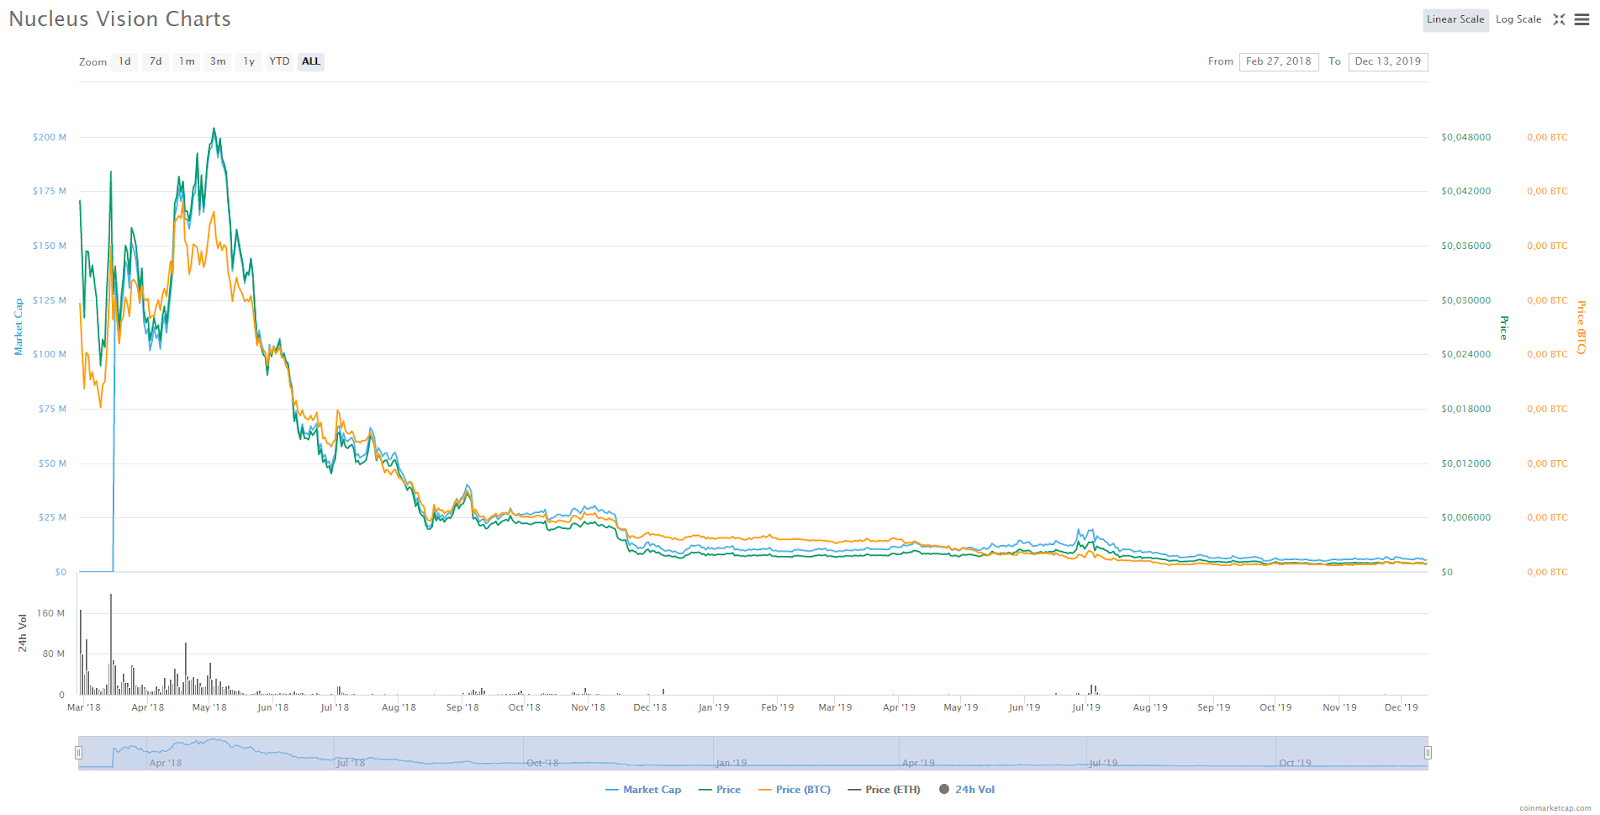 Nucleus Vision (NCASH) Price Chart